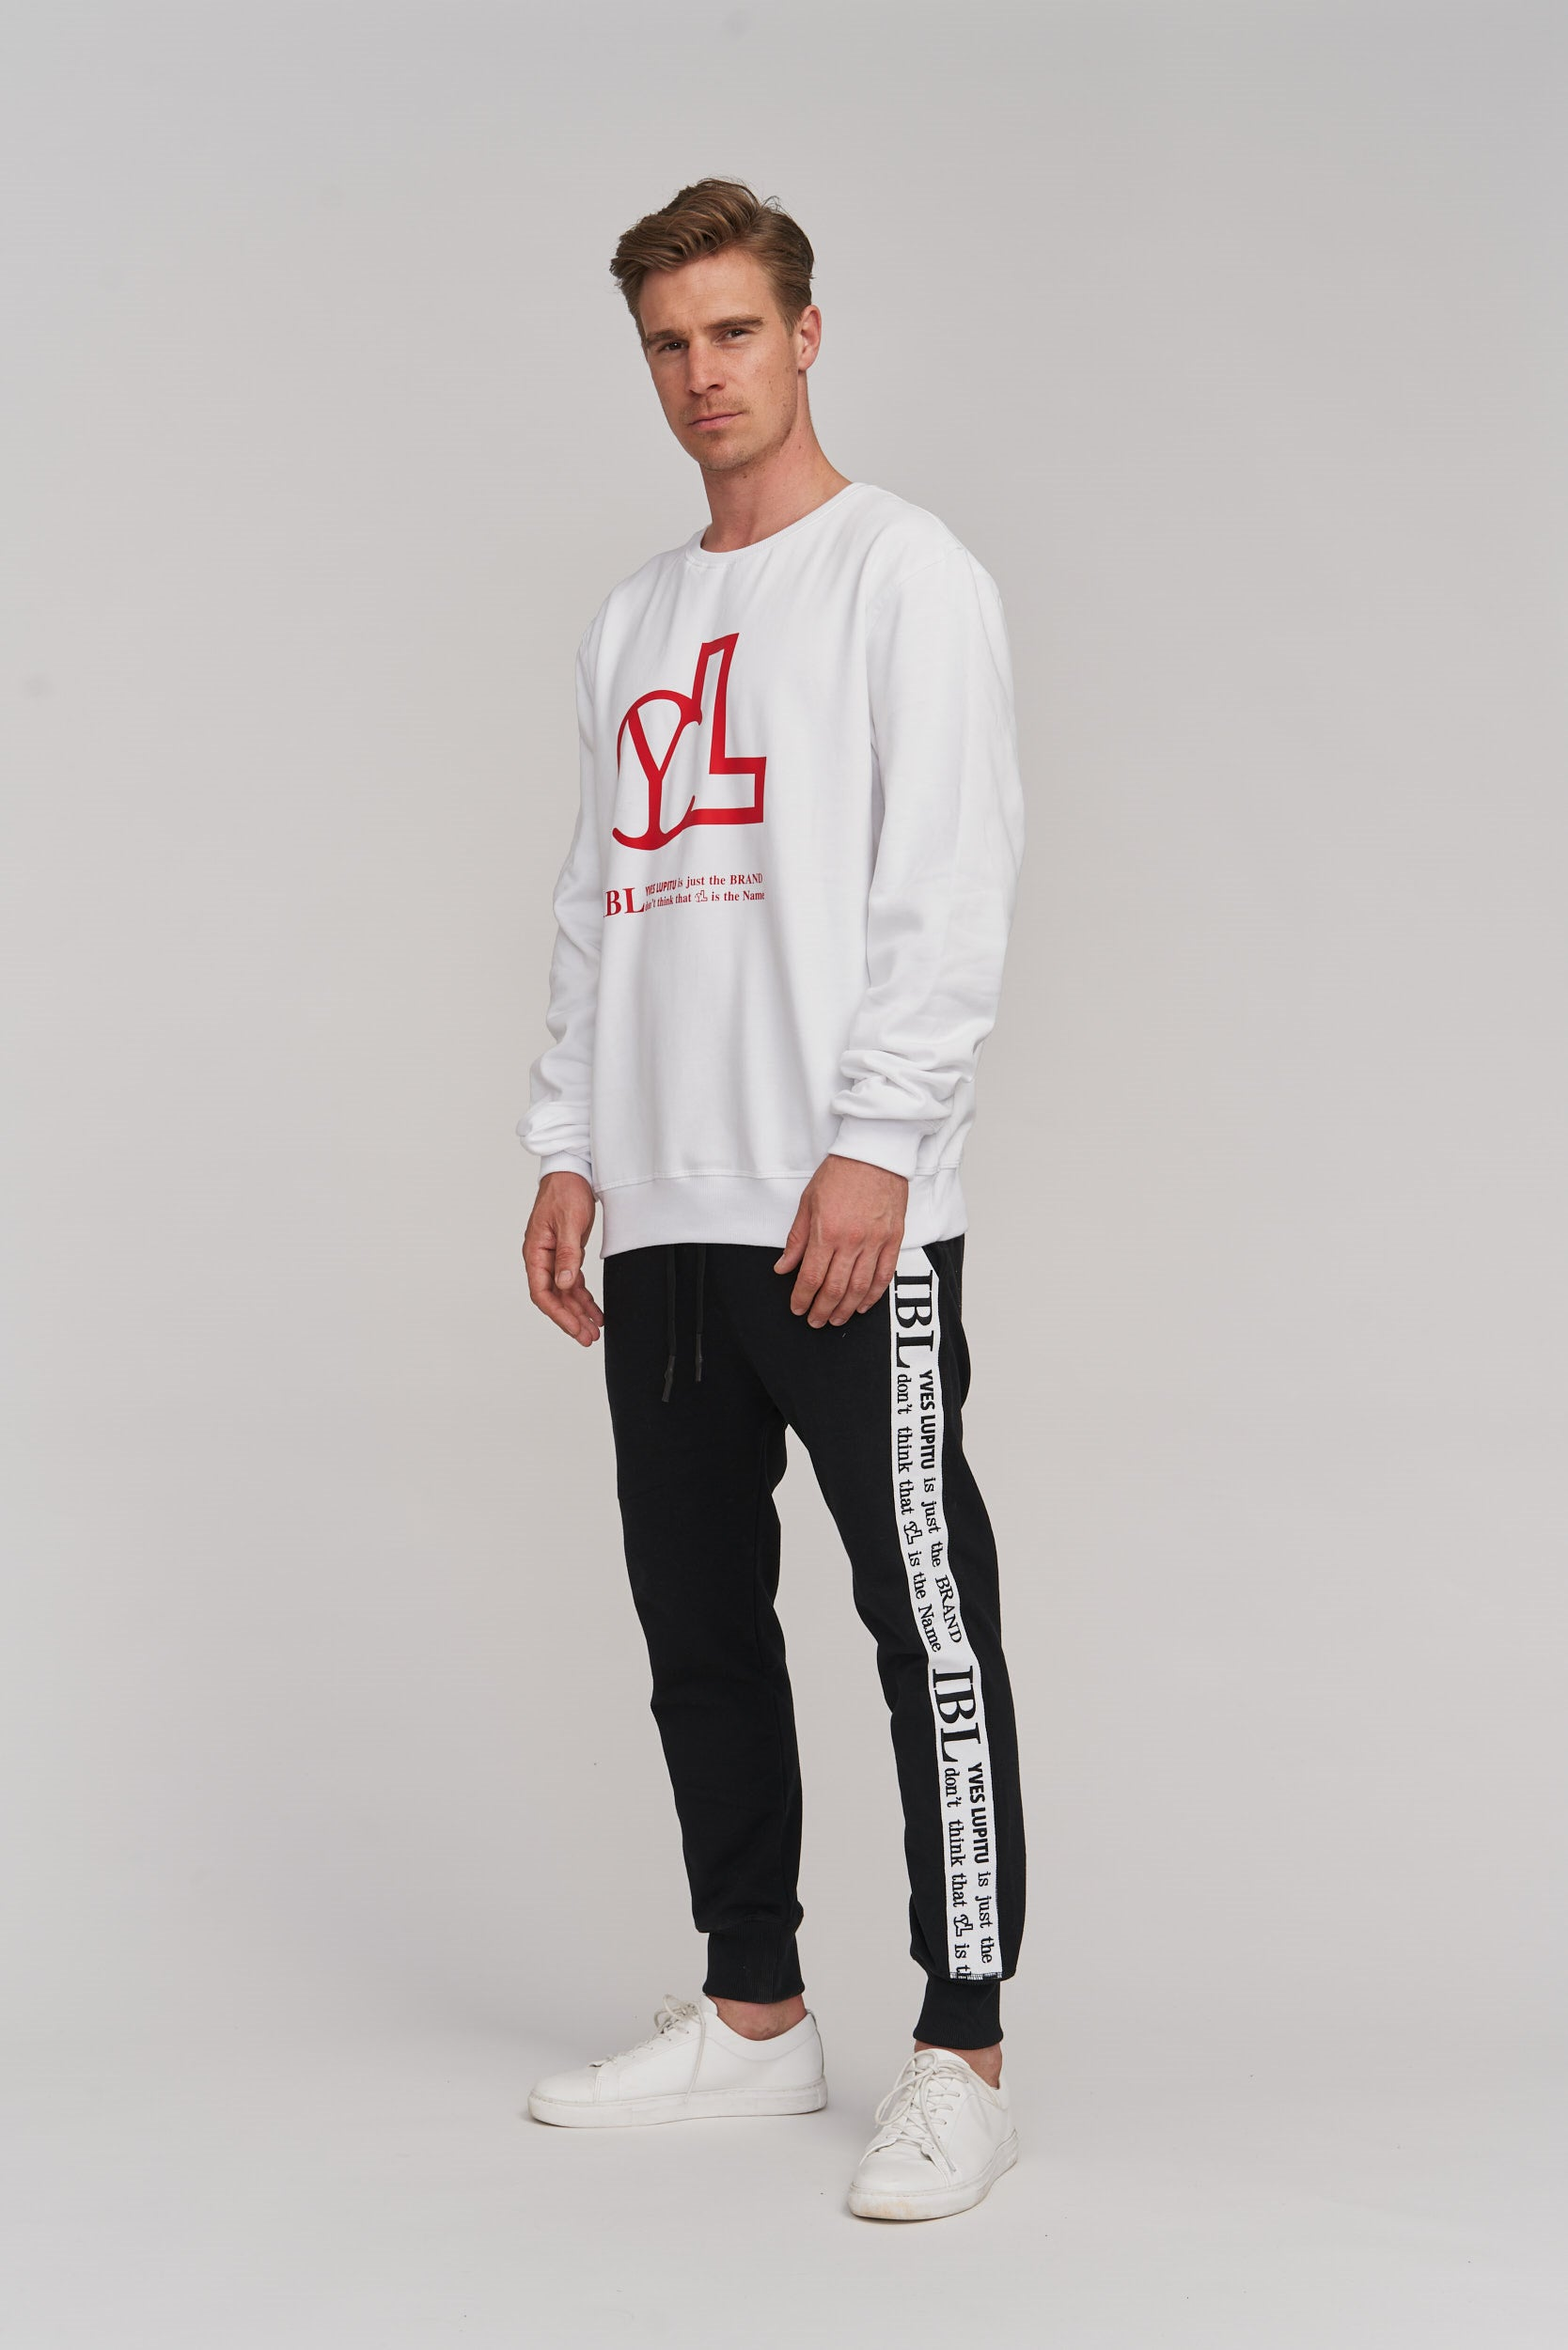 WHITE YL RED LOGO SWEAT